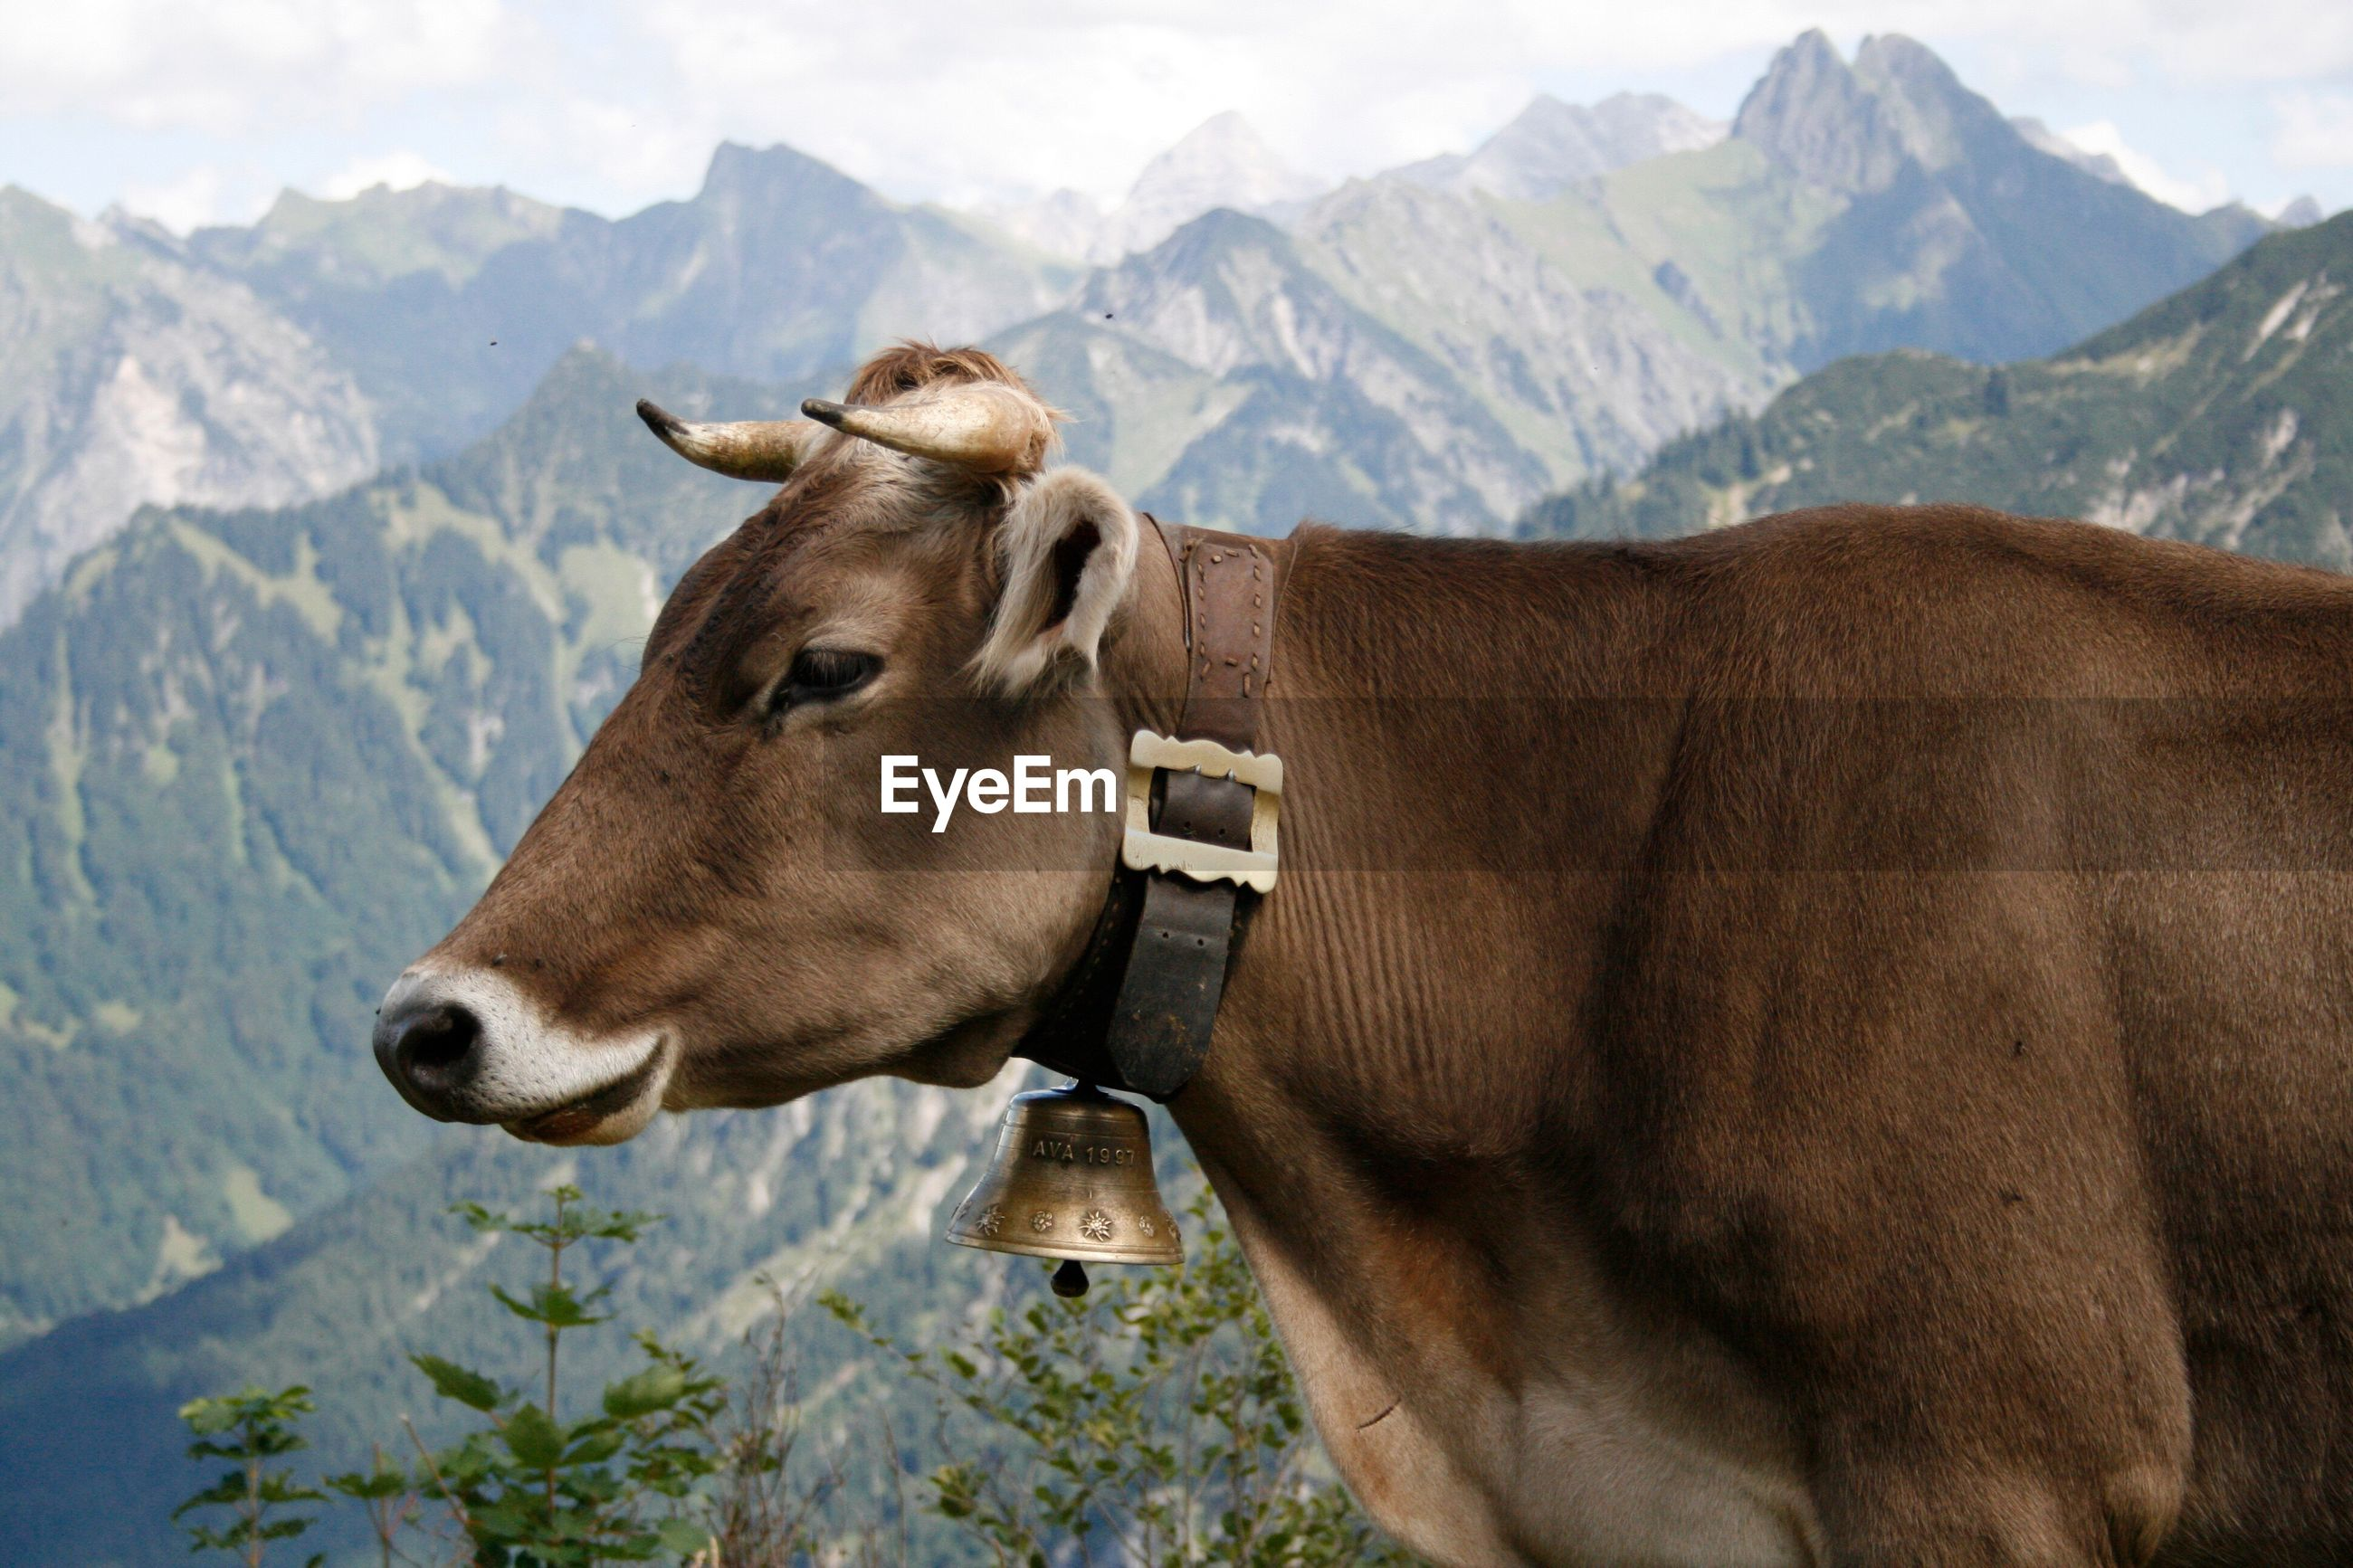 Close-up of cow in mountains